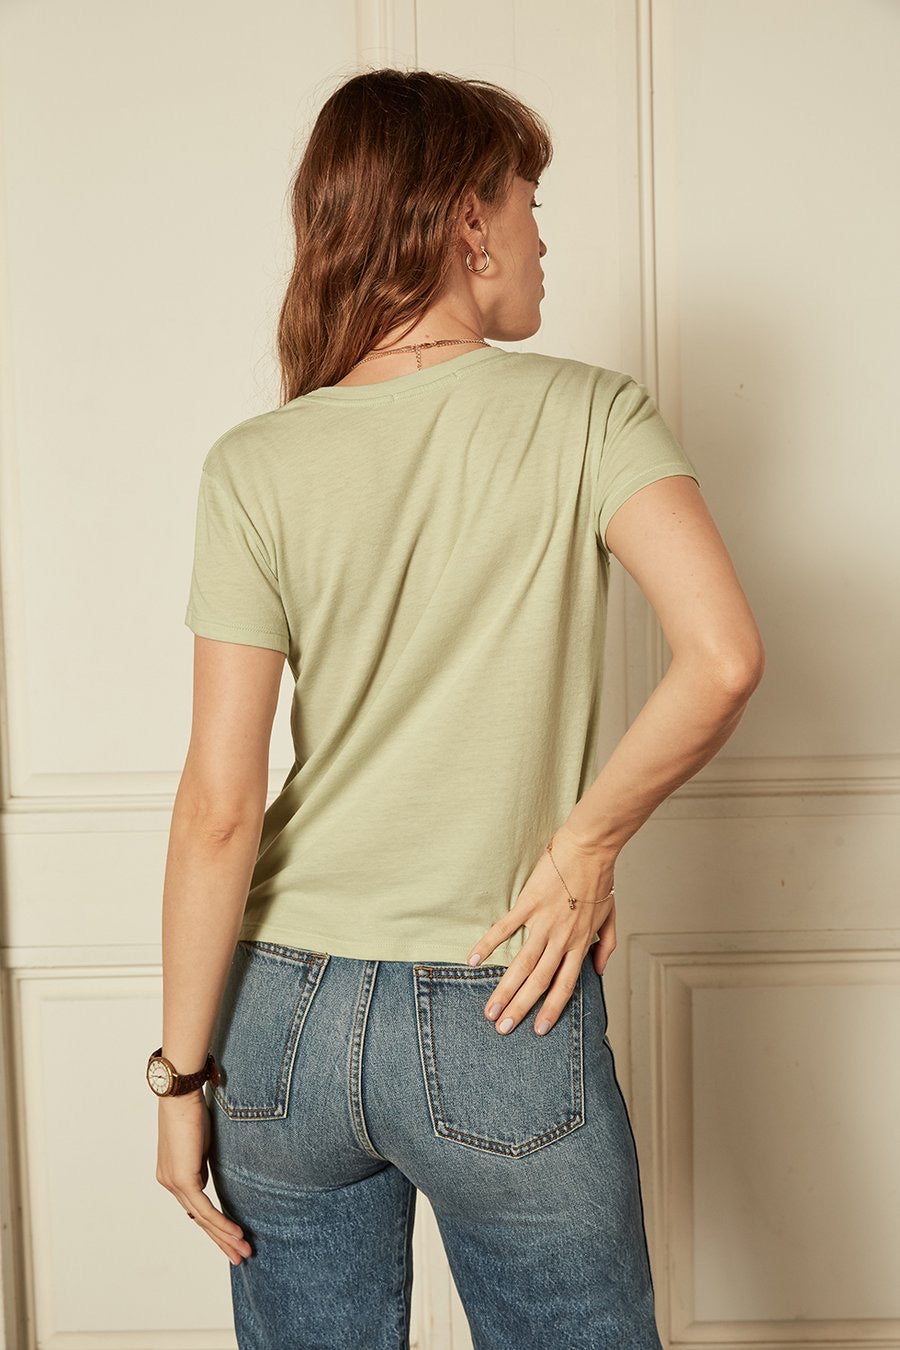 The Jagger Organic Cotton Slim Tee by Boyish Jeans